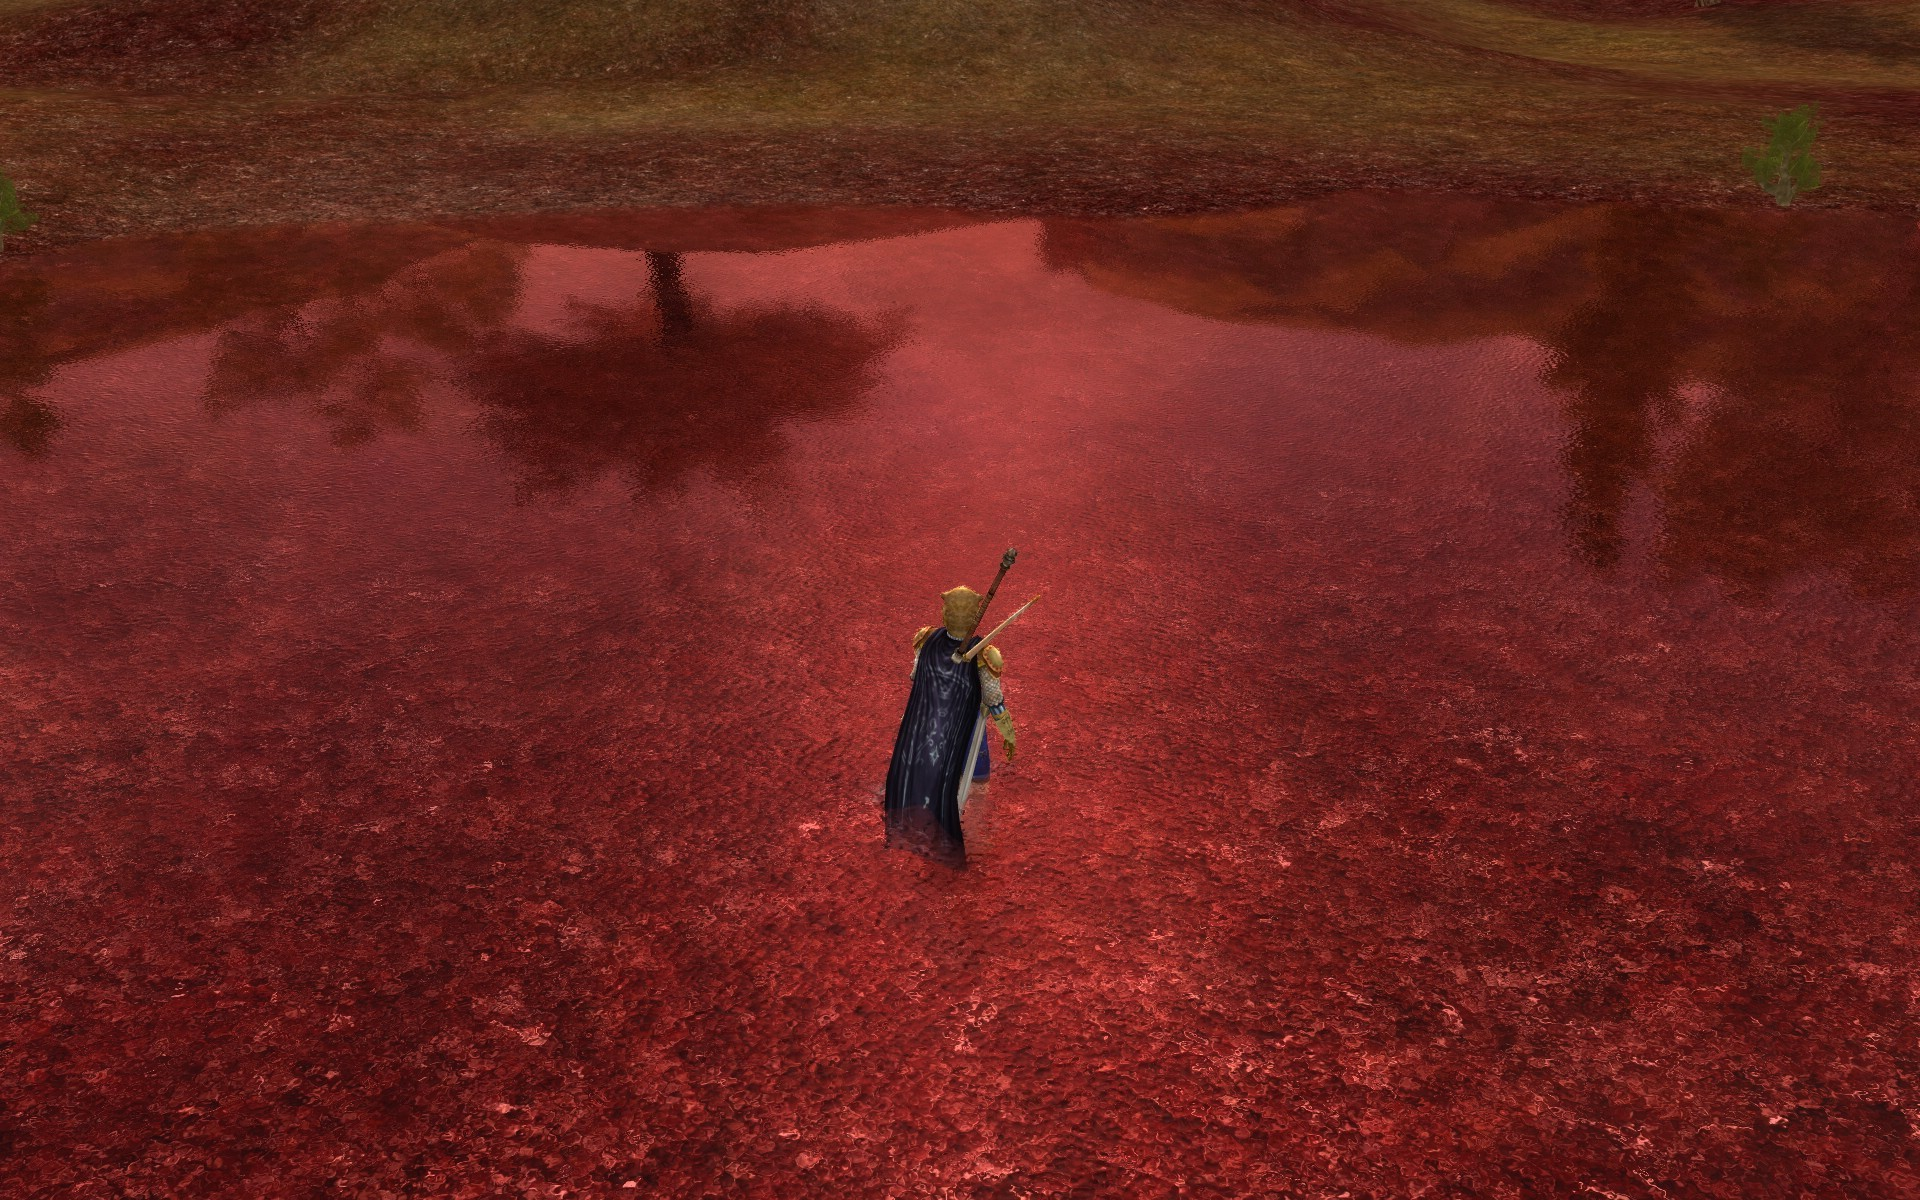 Lord of the Rings Online - gruesome and beautiful